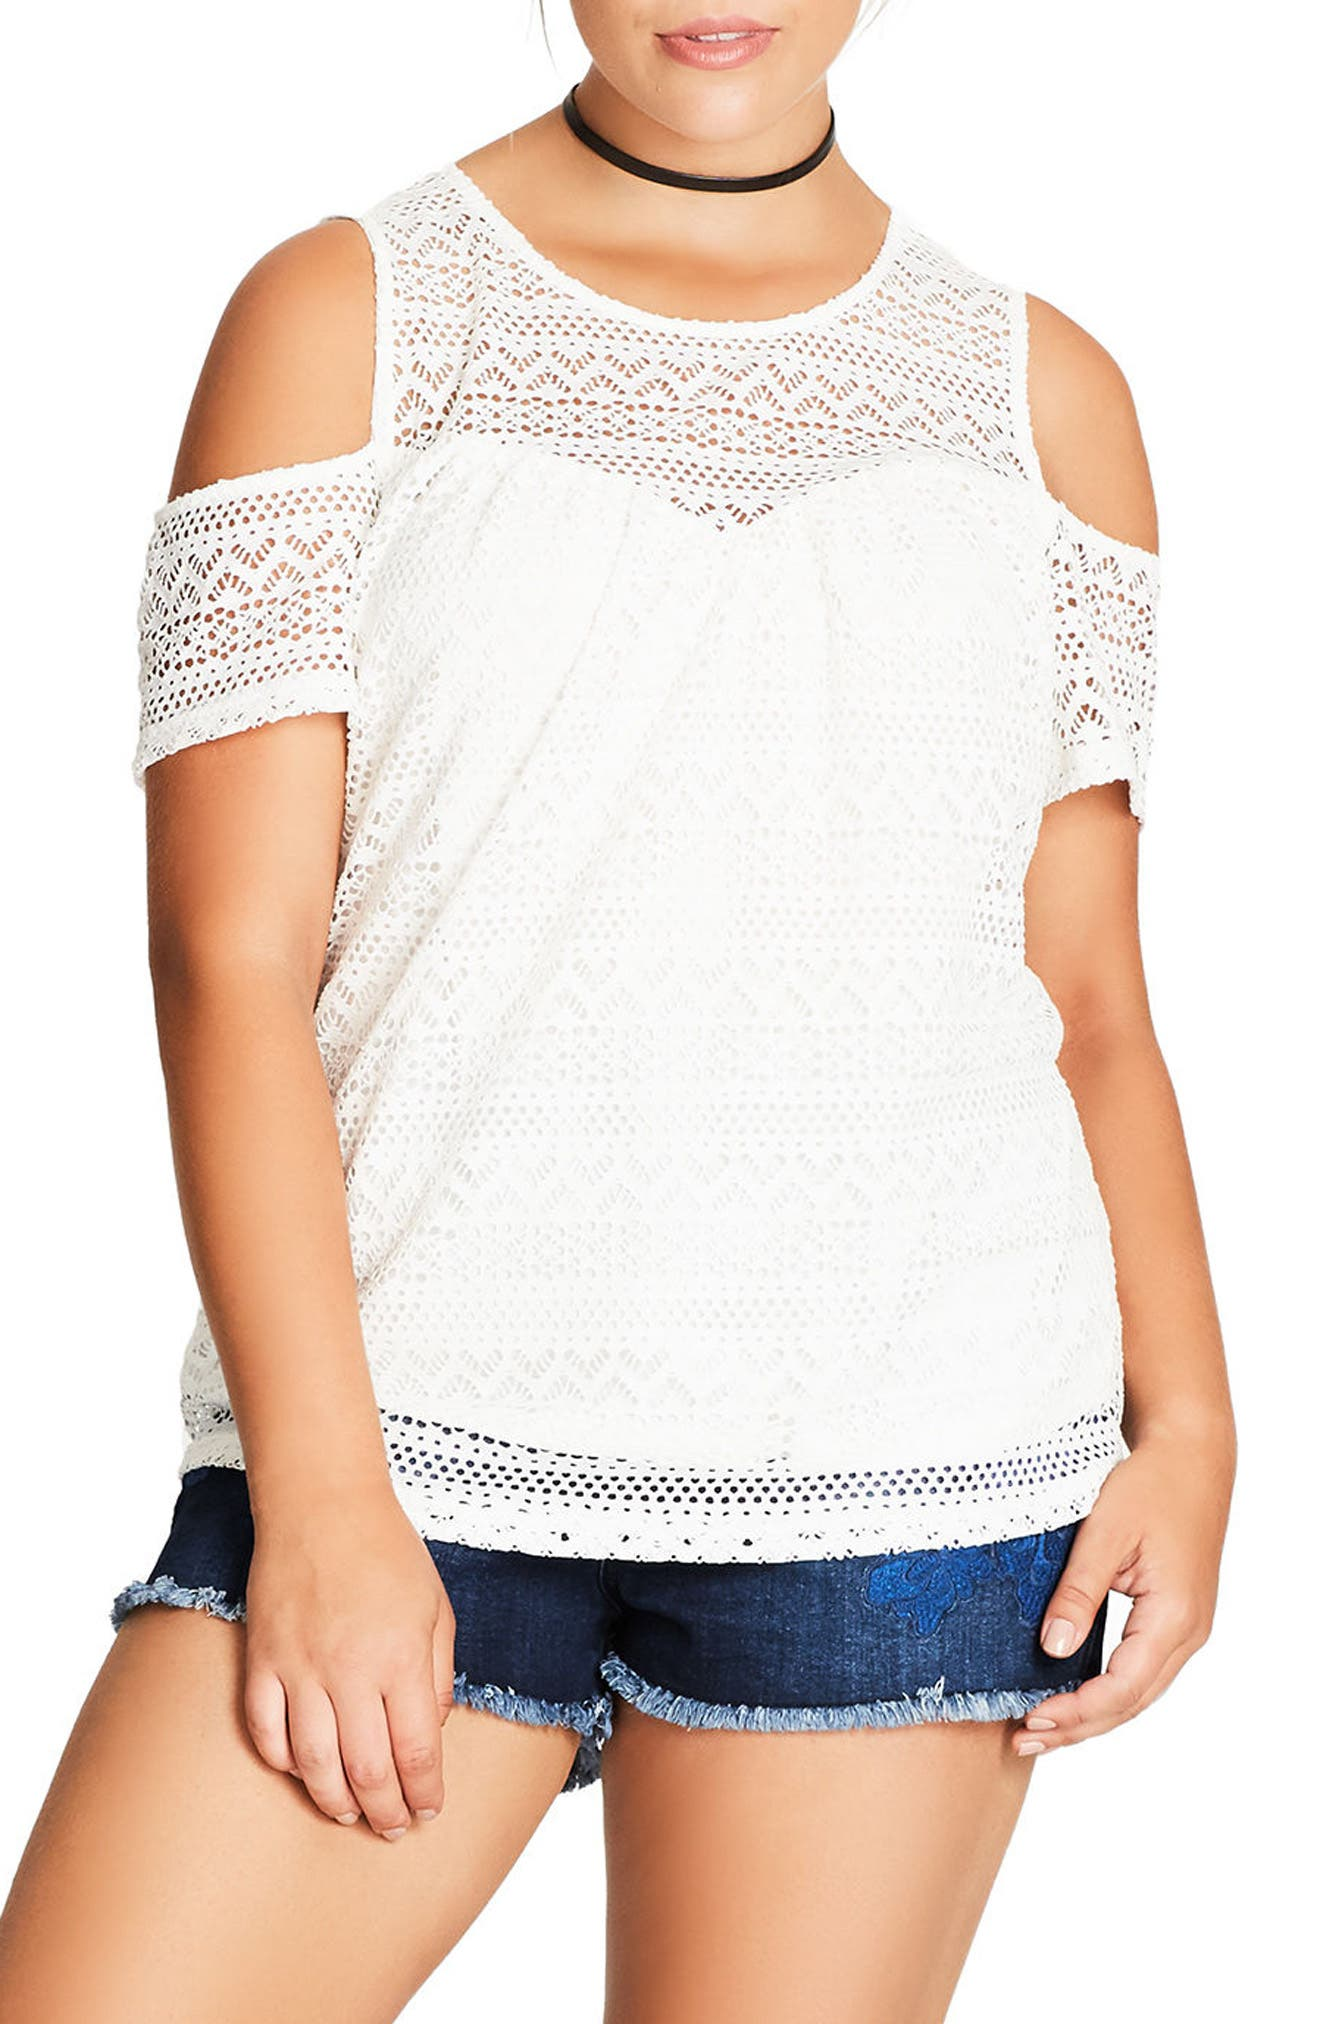 Alternate Image 1 Selected - City Chic Serenity Lace Cold Shoulder Top (Plus Size)